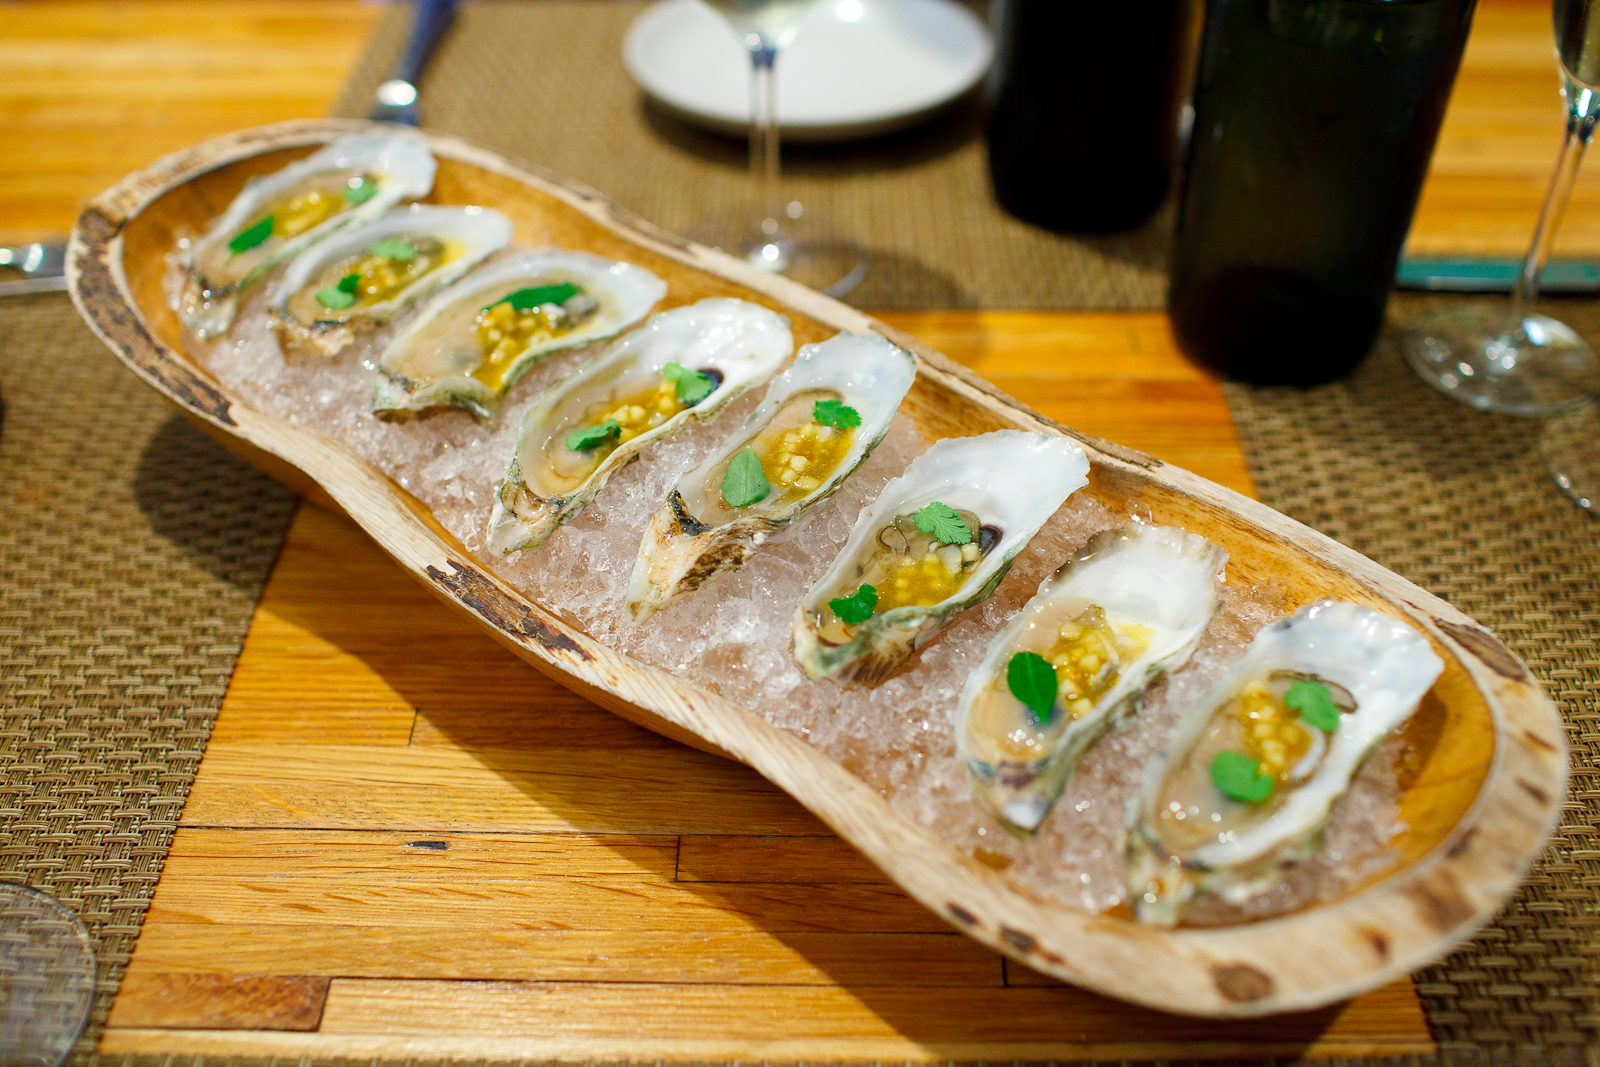 """2nd Course: Oysters from """"clammer Dave,"""" harvested 2-hours ago. Topped with house-fermented rutabaga, lime, and coriander."""